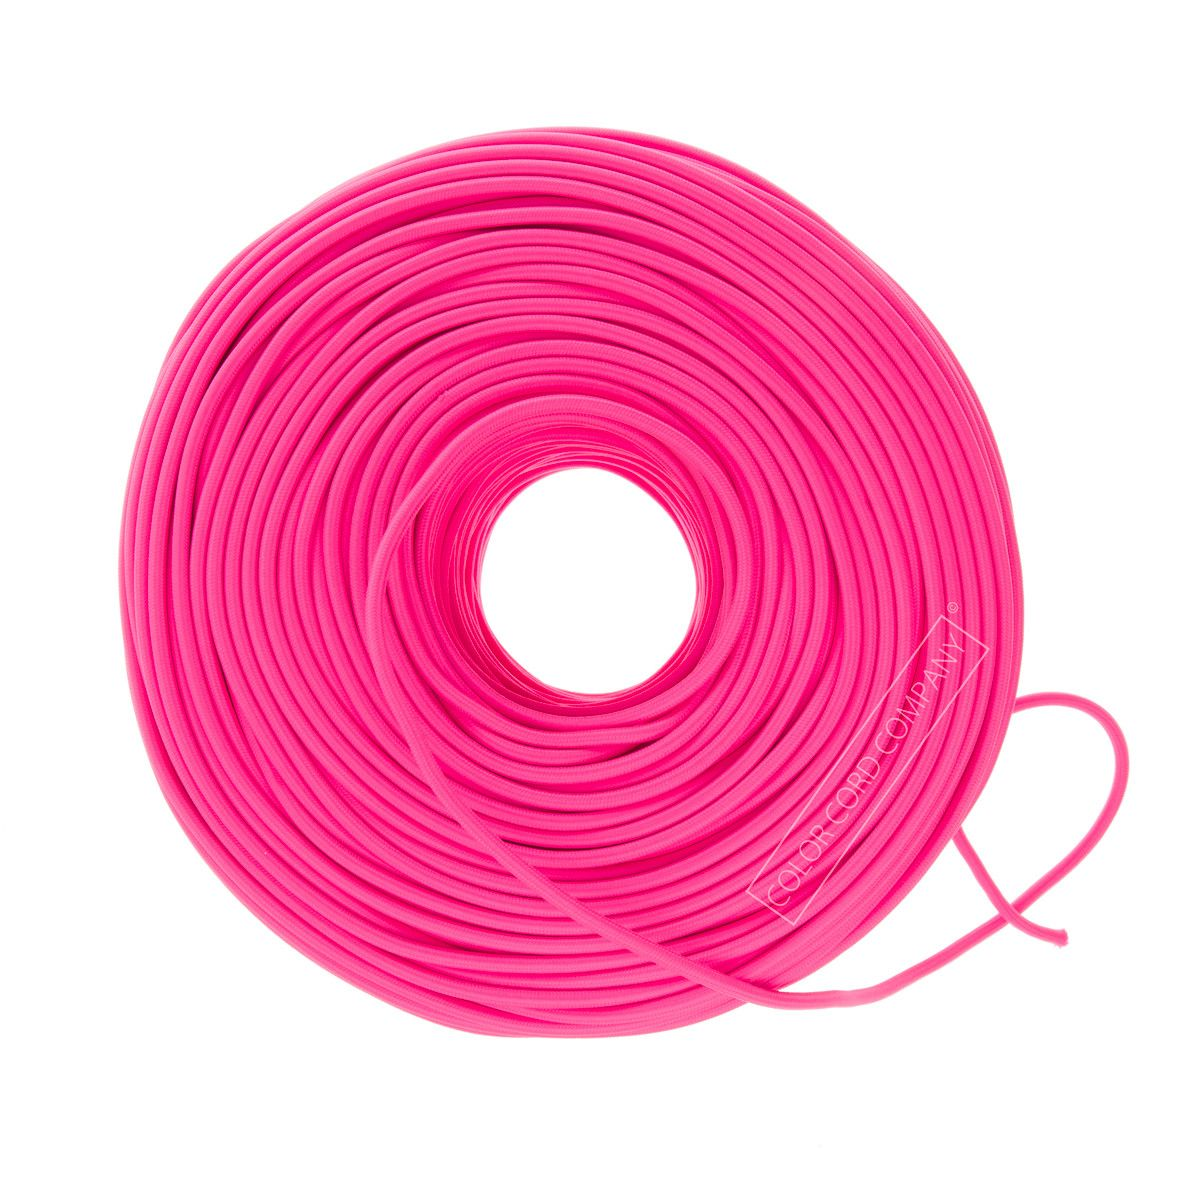 So Cord Listed 3 4 5 Conductor So Sow Cable Flexible Cored: Cloth Covered Wire - Hot Pink